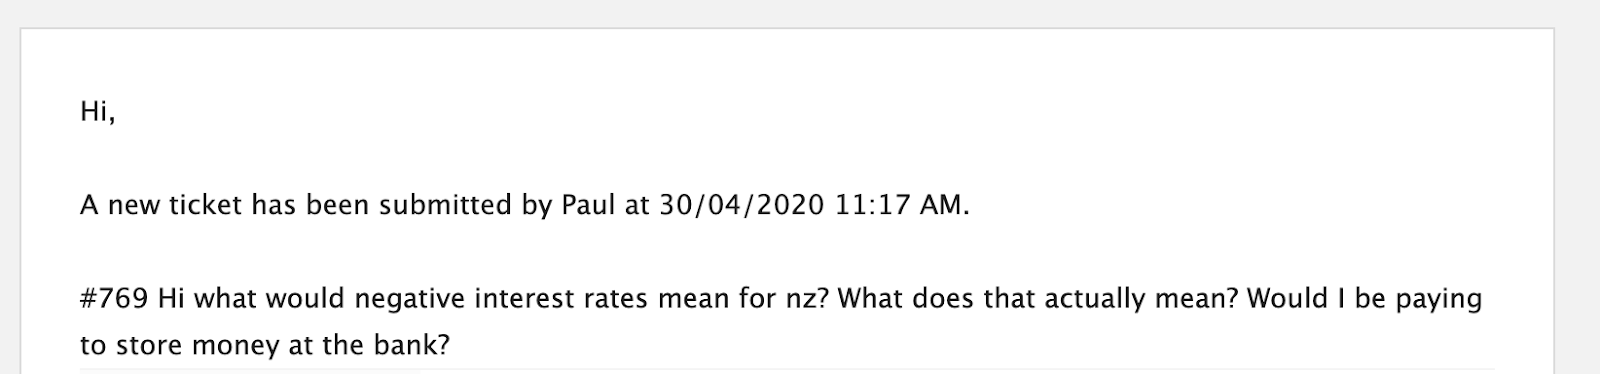 What would negative interest rates mean for NZ? What does that actually mean? Would I be paying to store money at the bank?